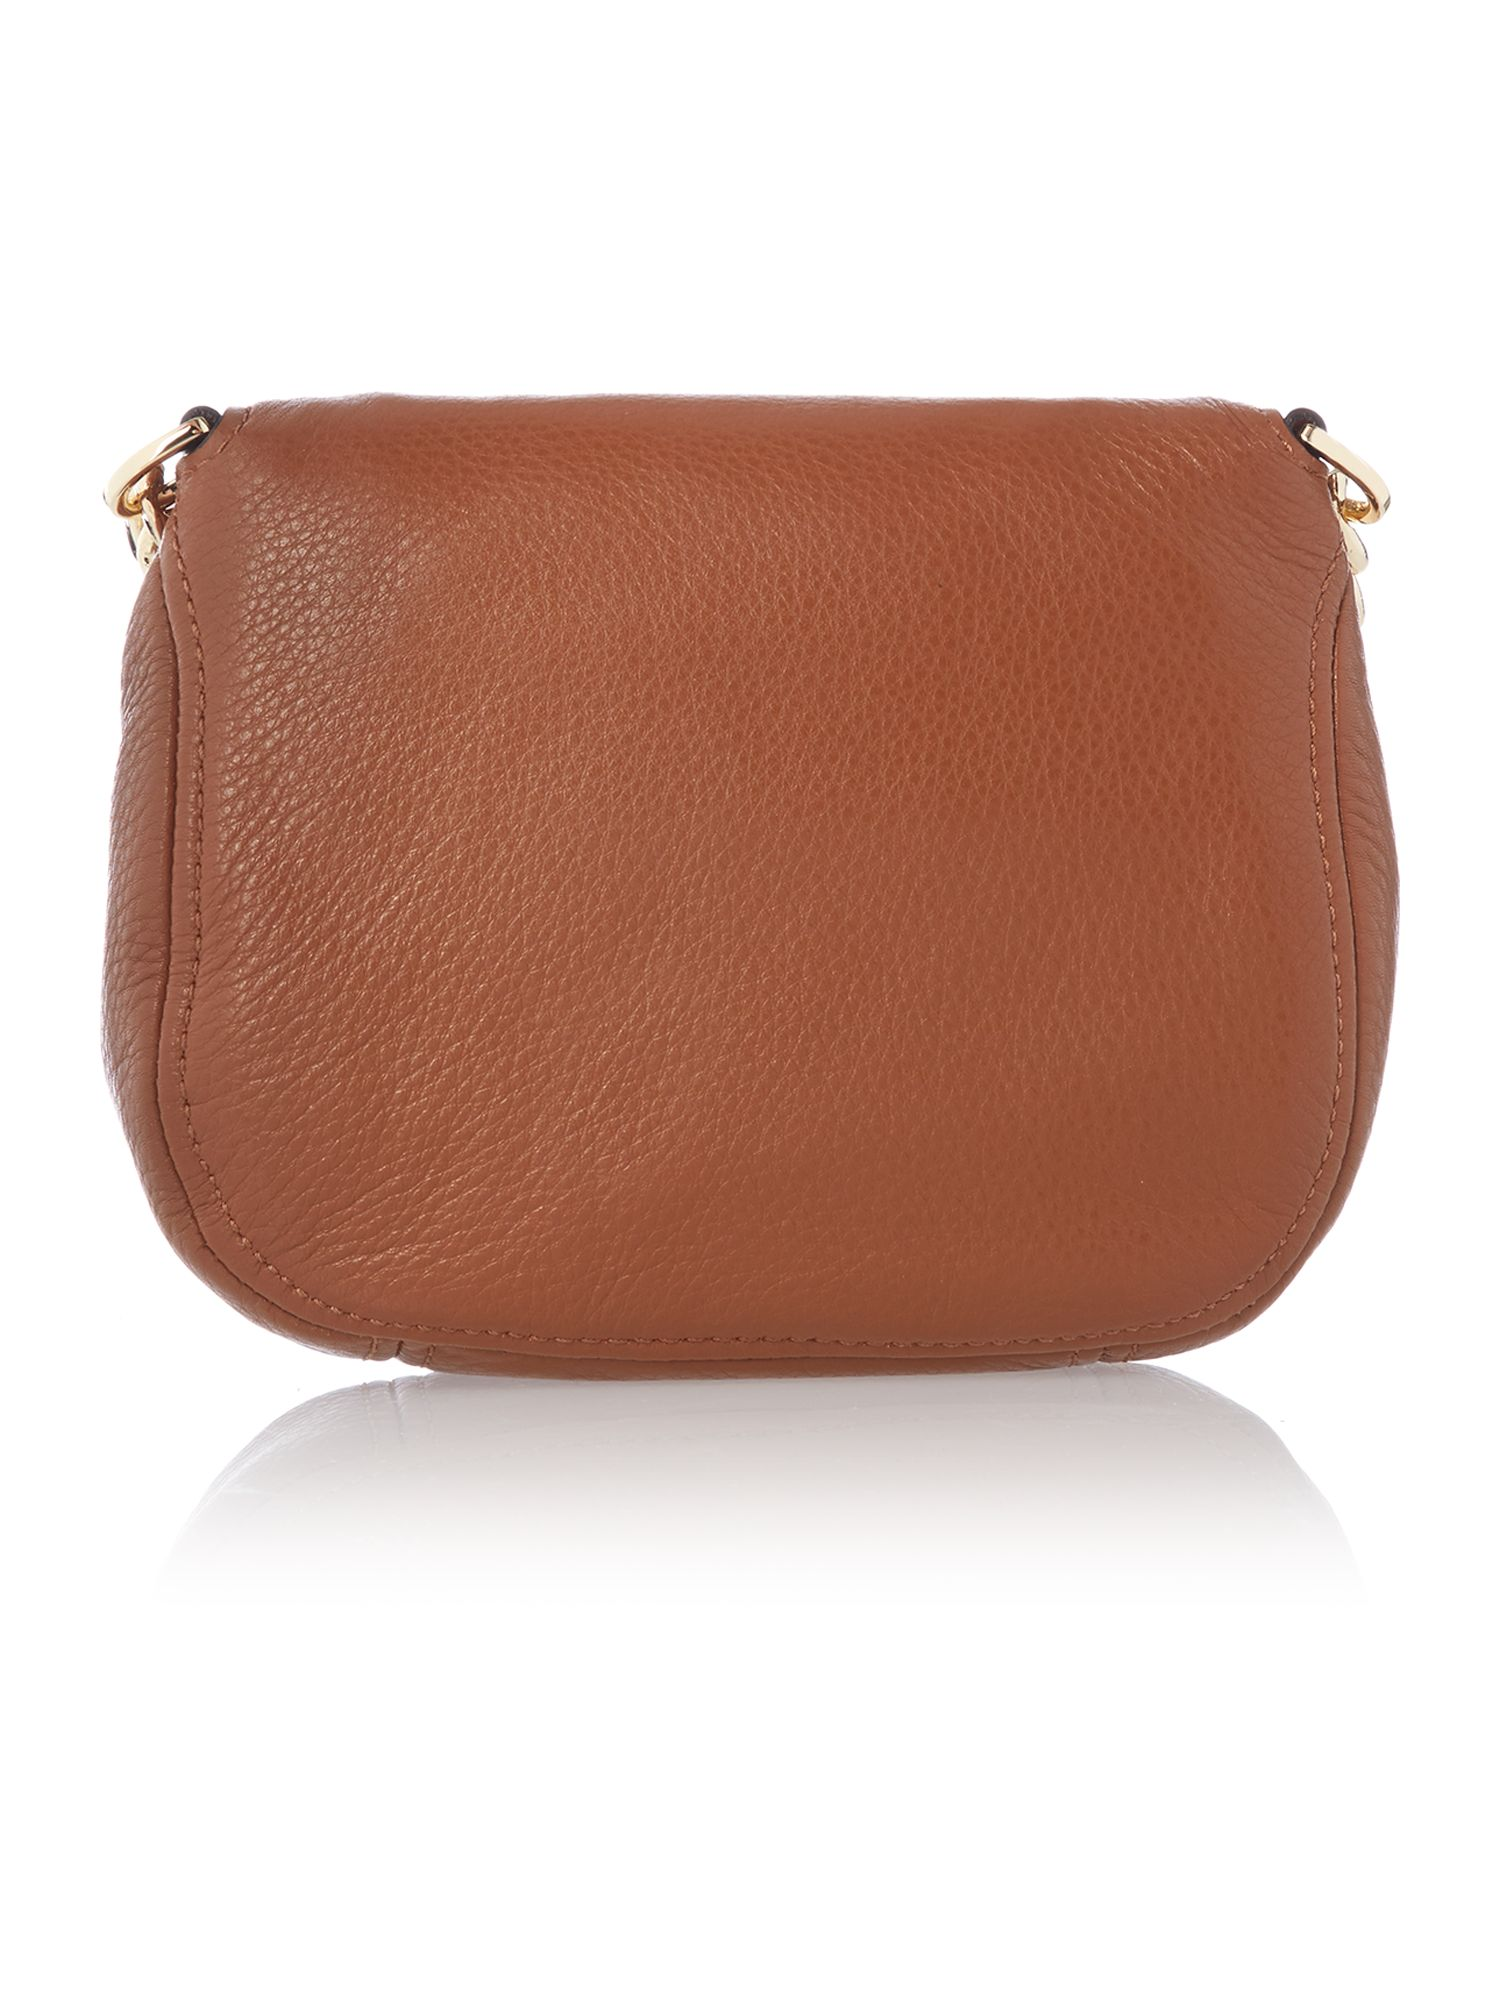 Bedford tan flap over cross body bag